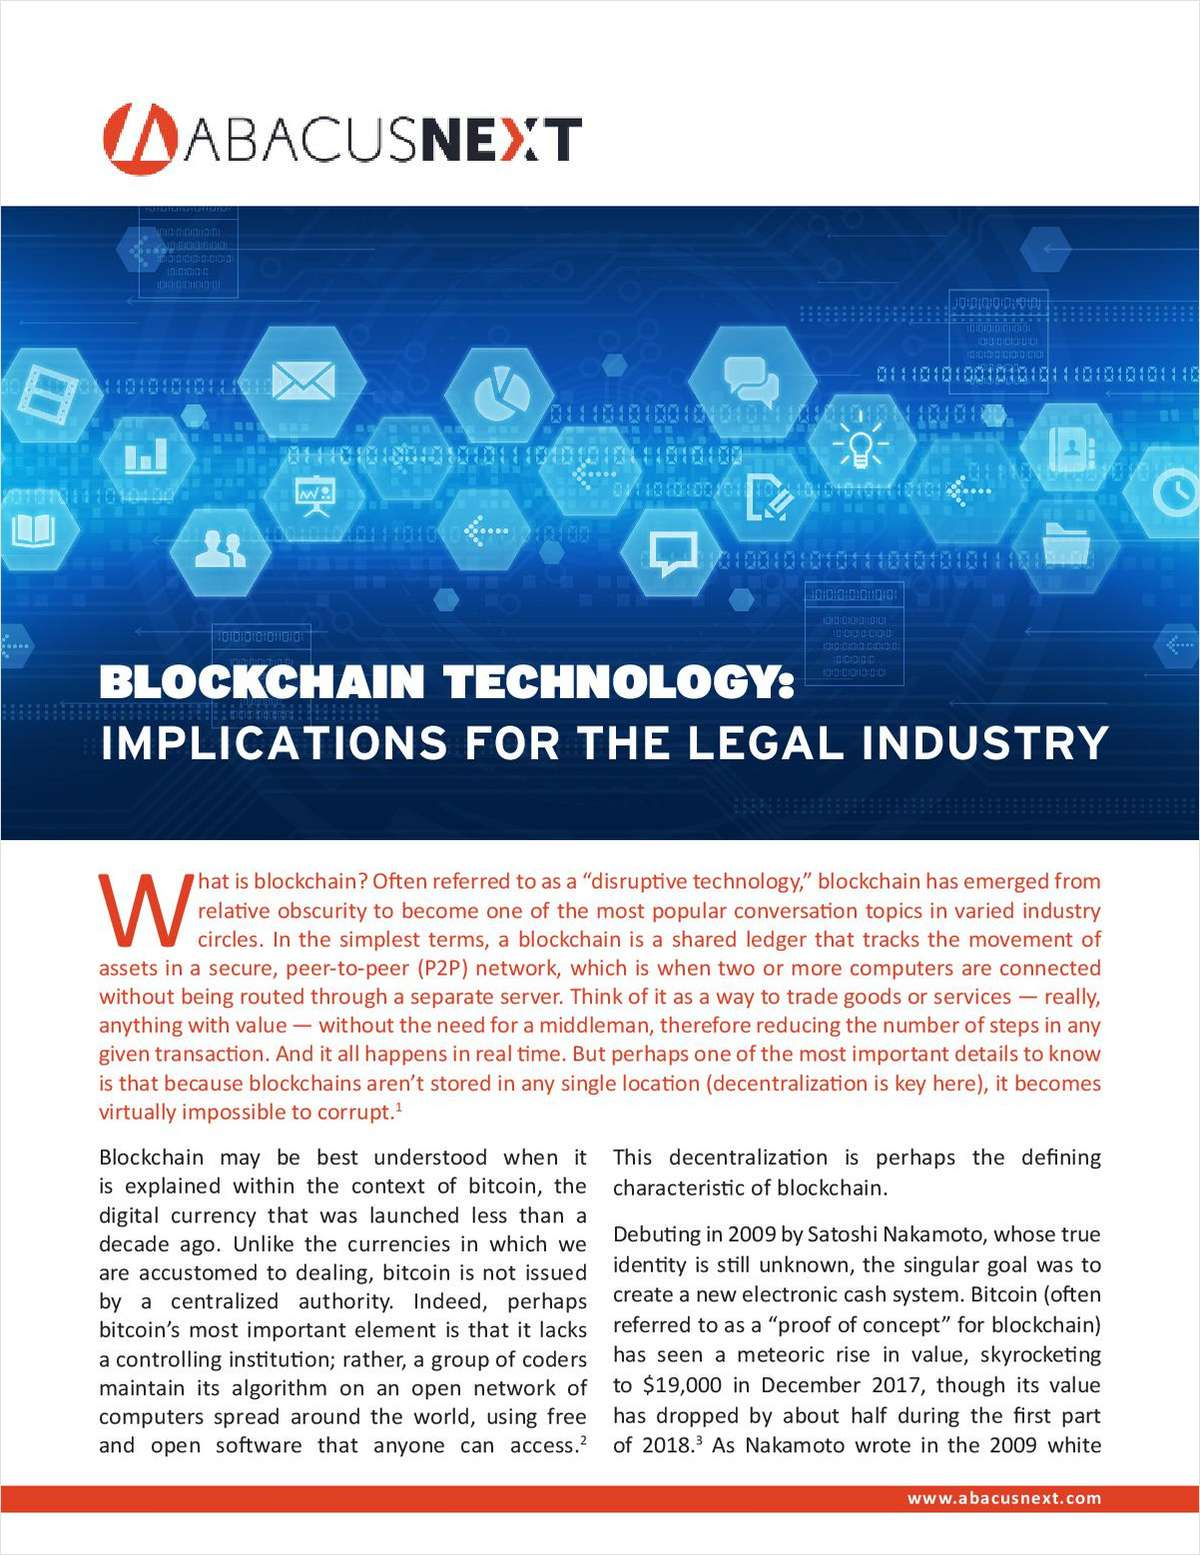 Blockchain Technology: 4 Implications for the Legal Industry